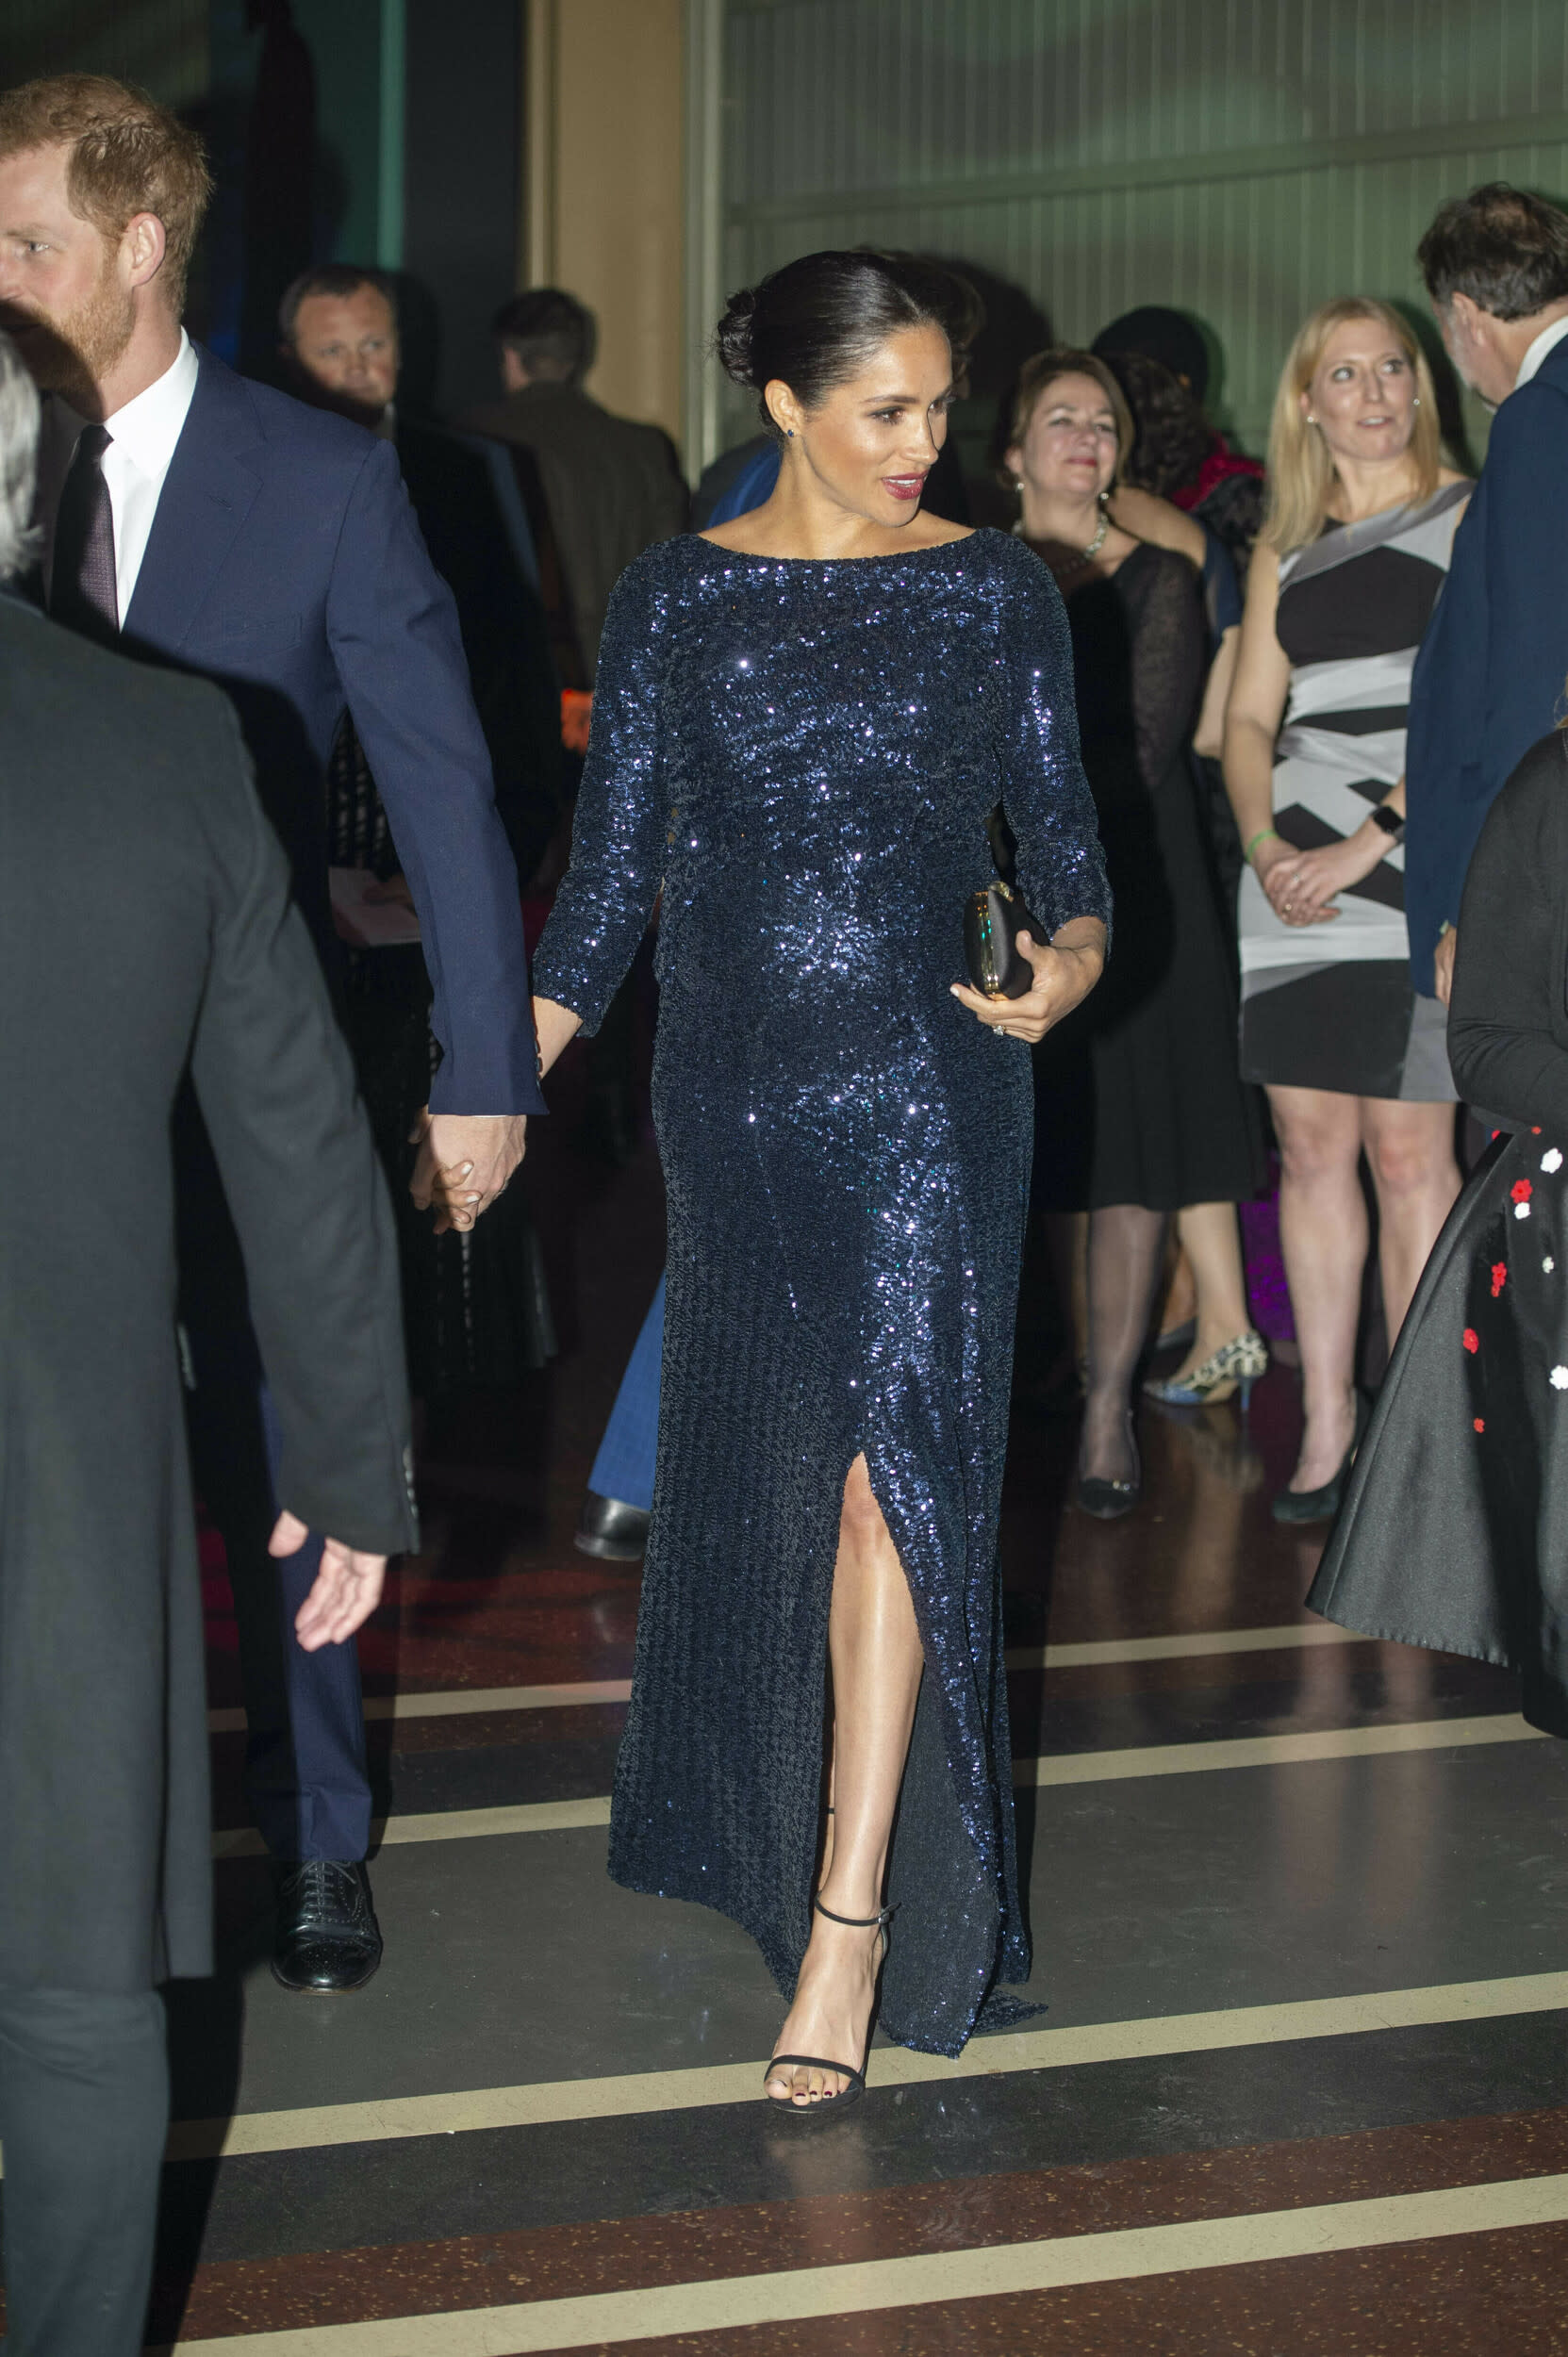 """The Duchess of Sussex attended the premiere of Cirque du Soleil's Totem in support of Prince Harry's charity Sentebale, which helps fight against AIDS in southern Africa. She donned a <a href=""""https://fave.co/2TeDAeZ"""">long-sleeved Roland Mouret gown</a> and <a href=""""https://fave.co/2WmsBBQ"""">Stuart Weitzman heels</a> for the occasion."""